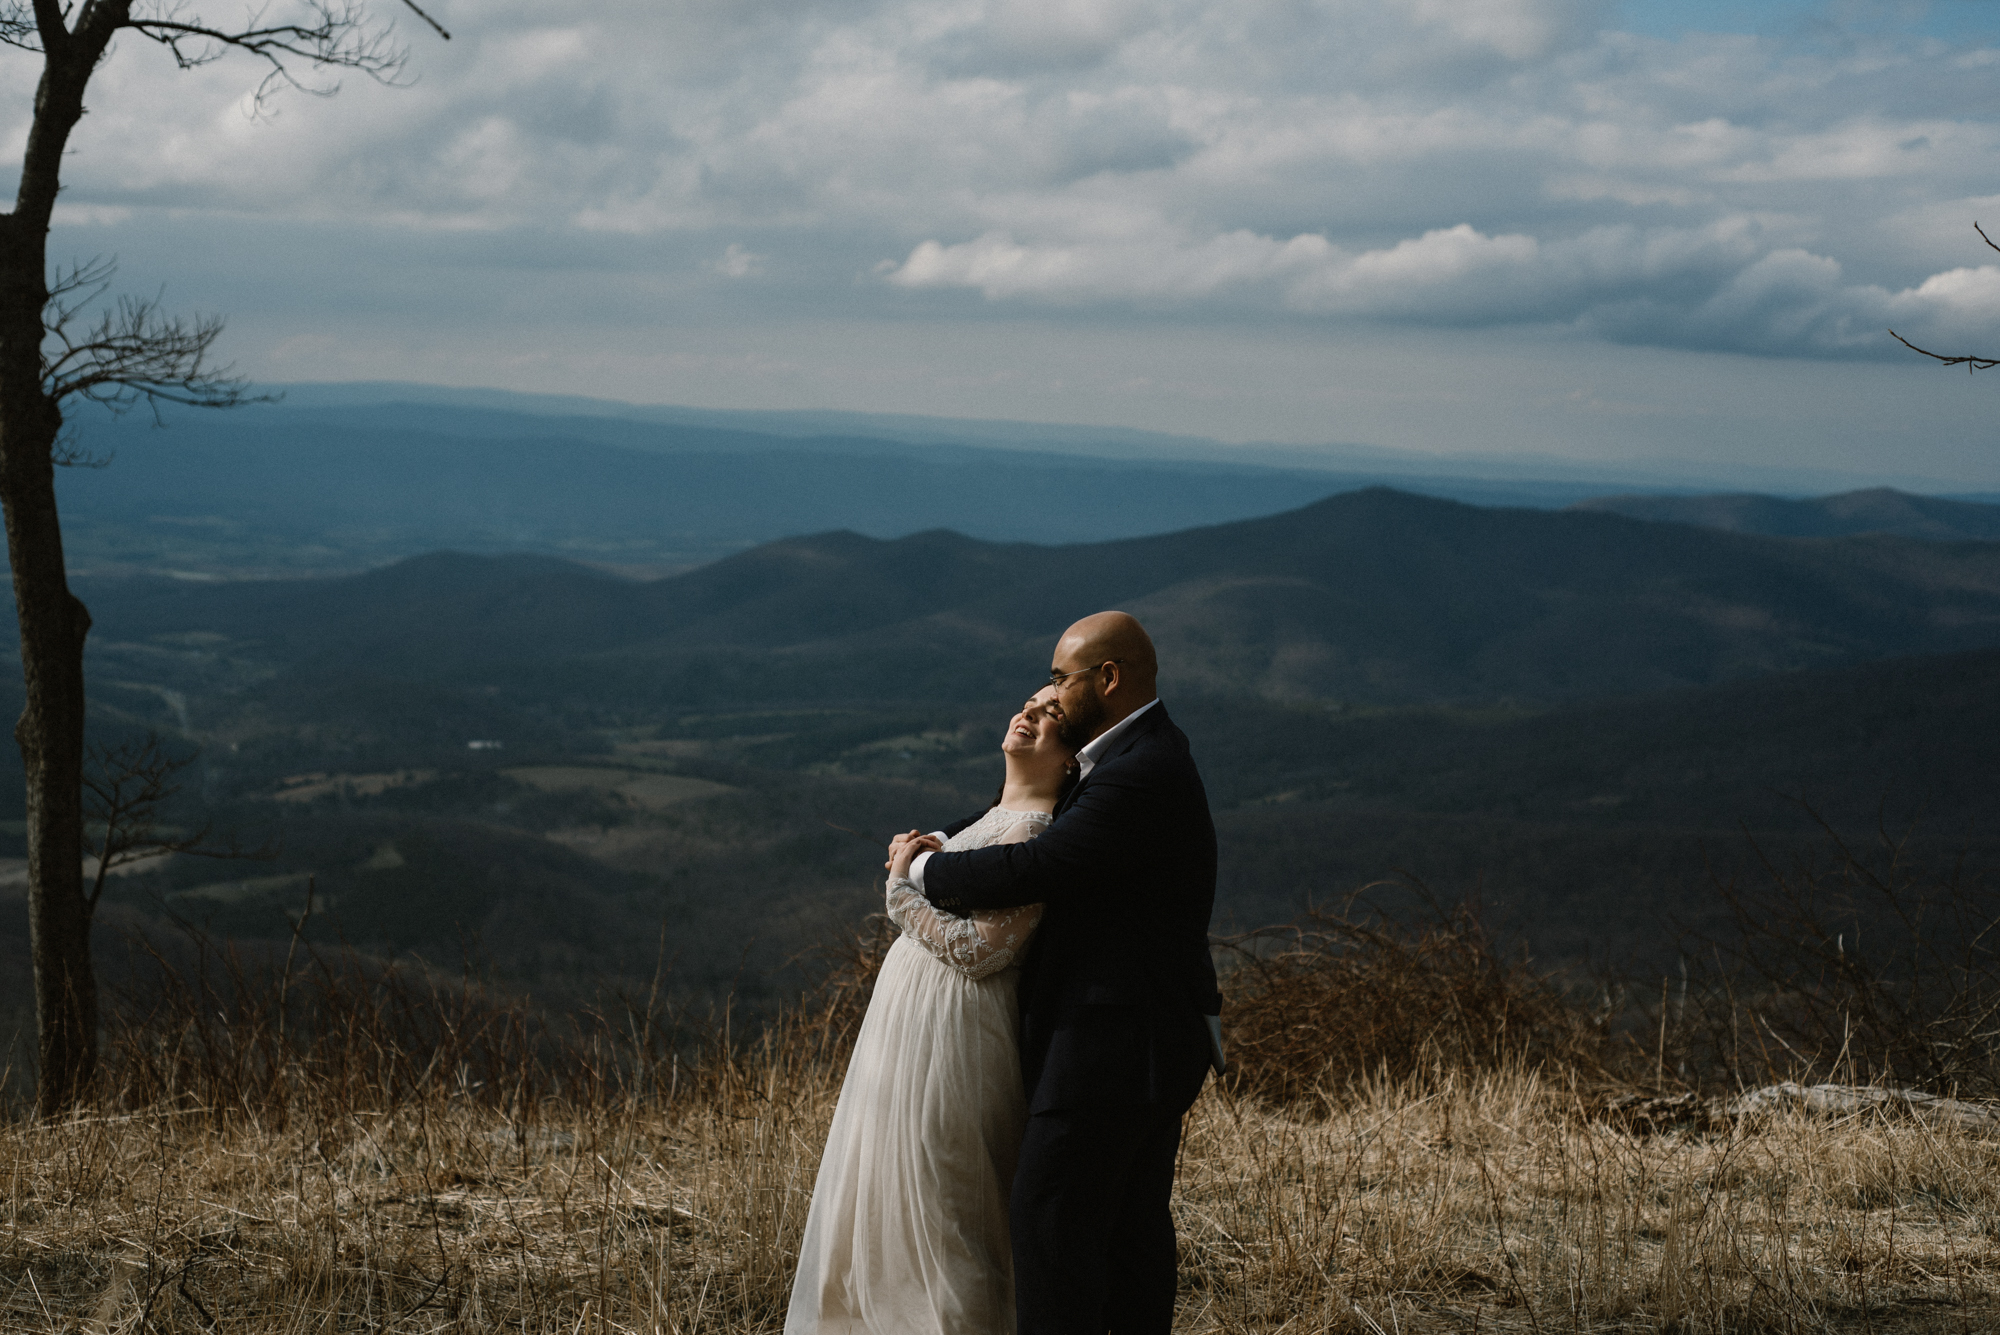 Emma and Jeddah - Intimate Luray Wedding - Shenandoah National Park Wedding - Adventure Elopement in Virginia - Shenandoah National Park Elopement_43.jpg